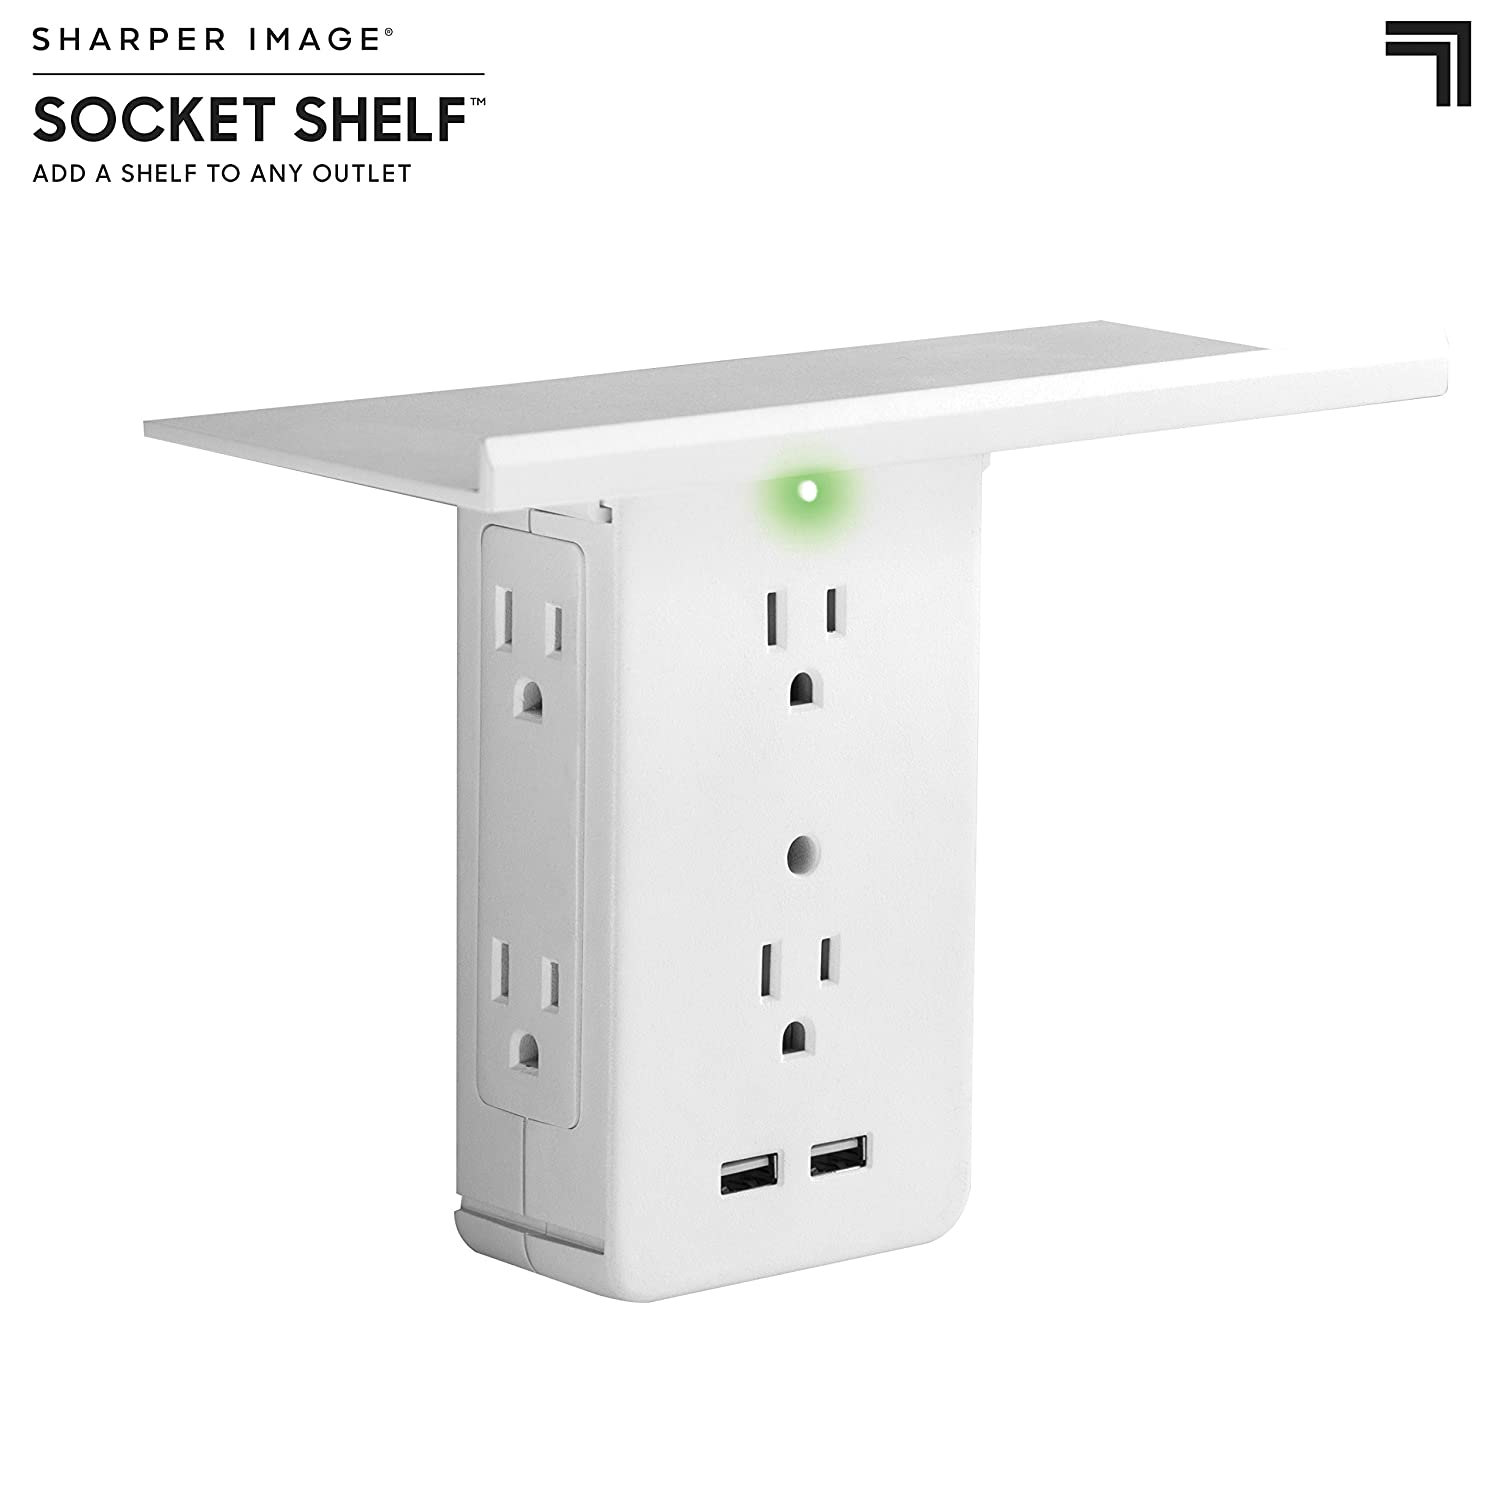 Socket Shelf  8 Port Surge Protector Wall Outlet, 6 Electrical Outlet Extenders, 2 Usb Charging Ports & Removable Built In Shelf Ul Listed by Allstar Innovations